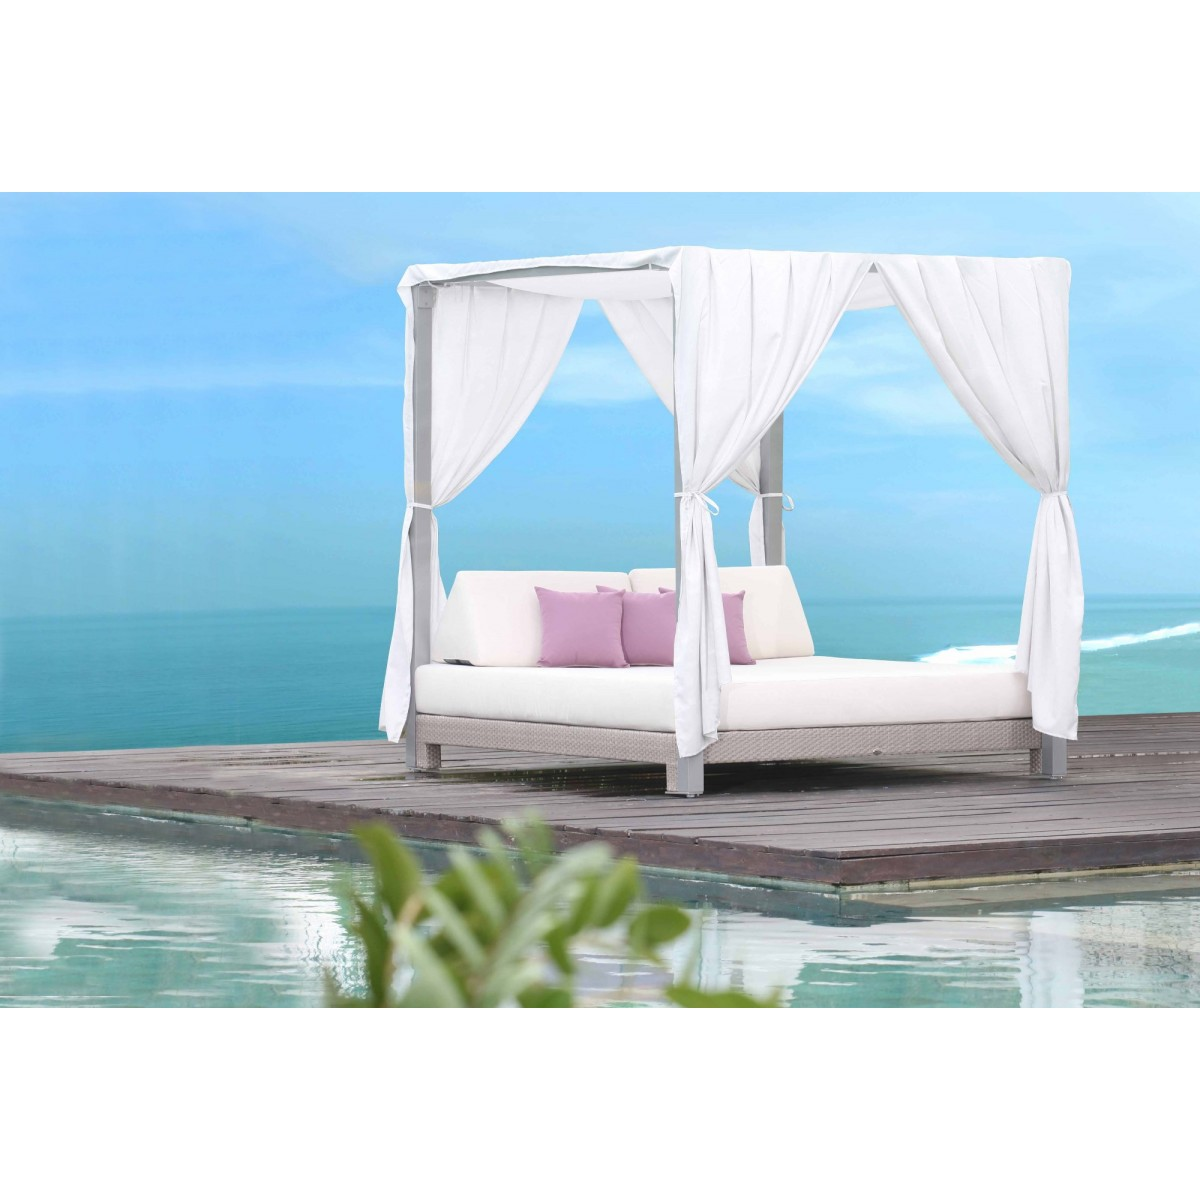 https://www.firstfurniture.co.uk/pub/media/catalog/product/0/7/076-22880_skyline_anibal_day_bed-1200x1200.jpg